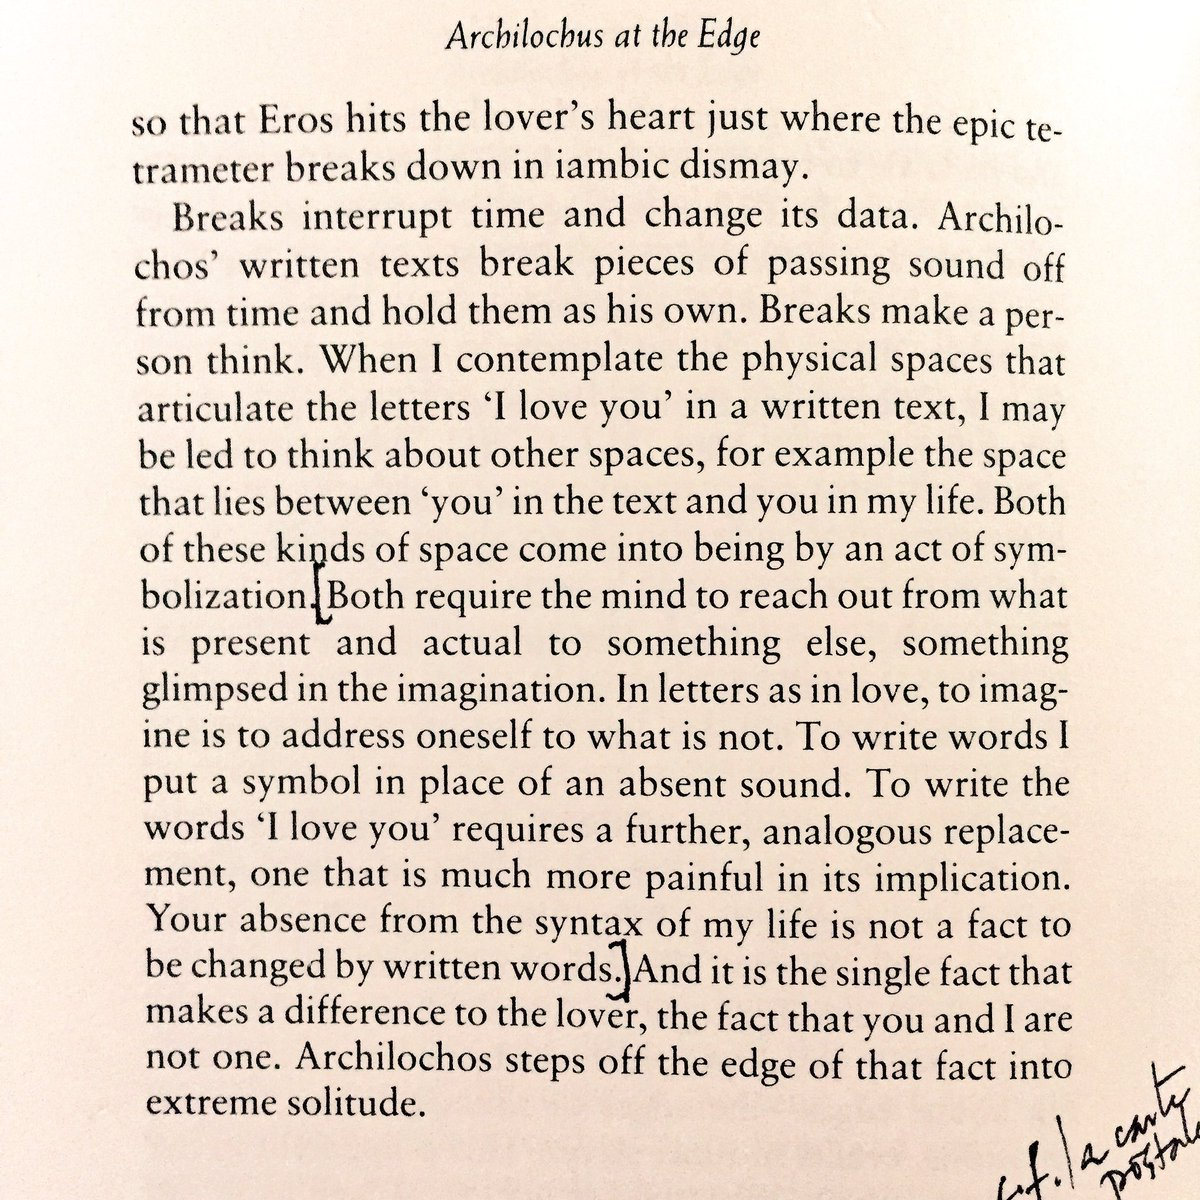 &quot;Your absence from the syntax of my life is not a fact to be changed by written words.&quot;  -Anne Carson on Archilochus,  in Eros the Bittersweet #everynightapoem #ofsorts <br>http://pic.twitter.com/0kgbwfnEt9